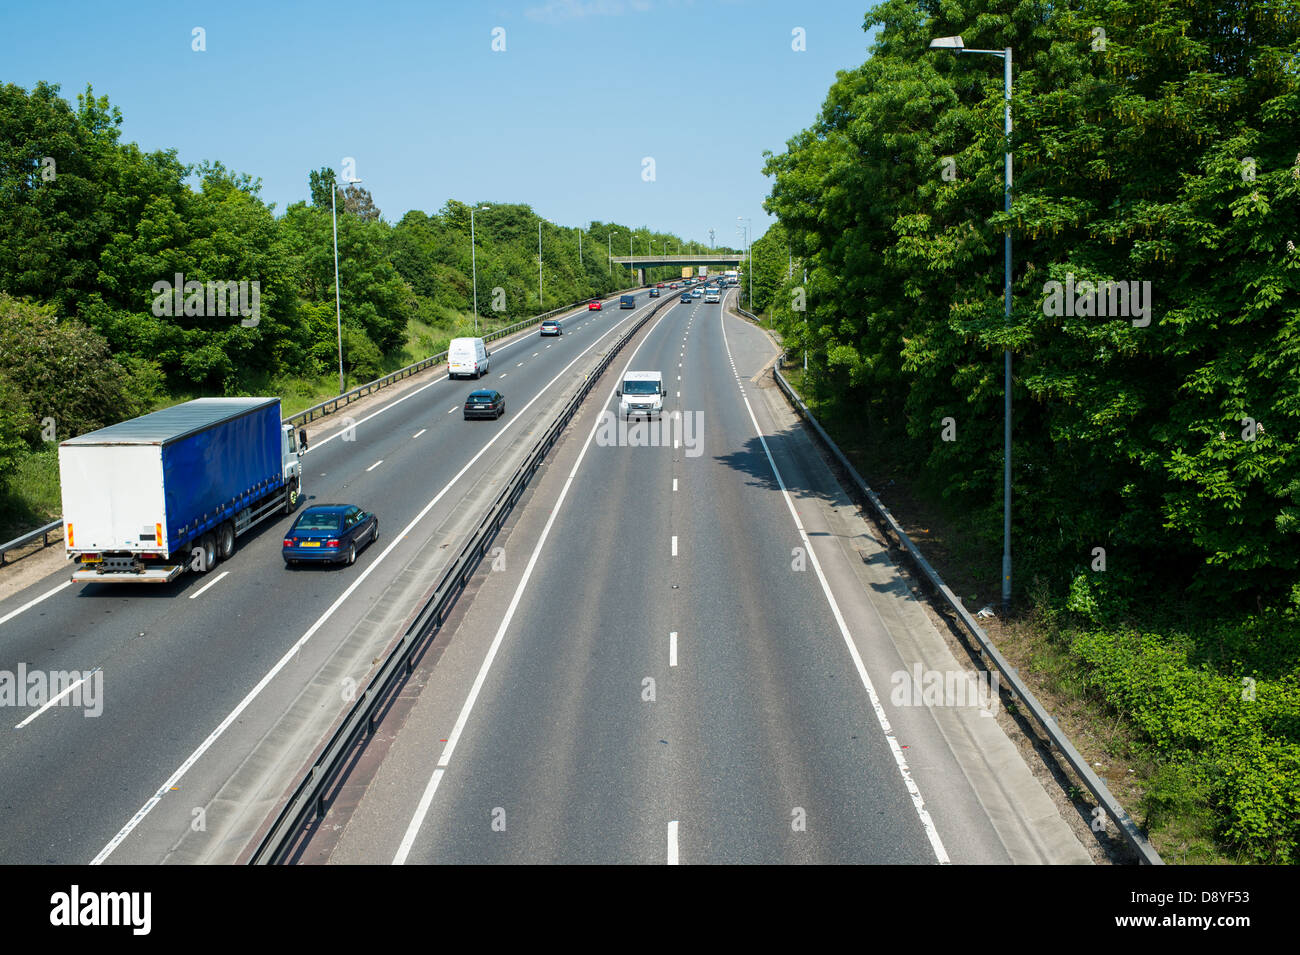 A12 Essex, UK. Vehicles using the outside lane on dual carriageway when no traffic is in nearside lane. Stock Photo